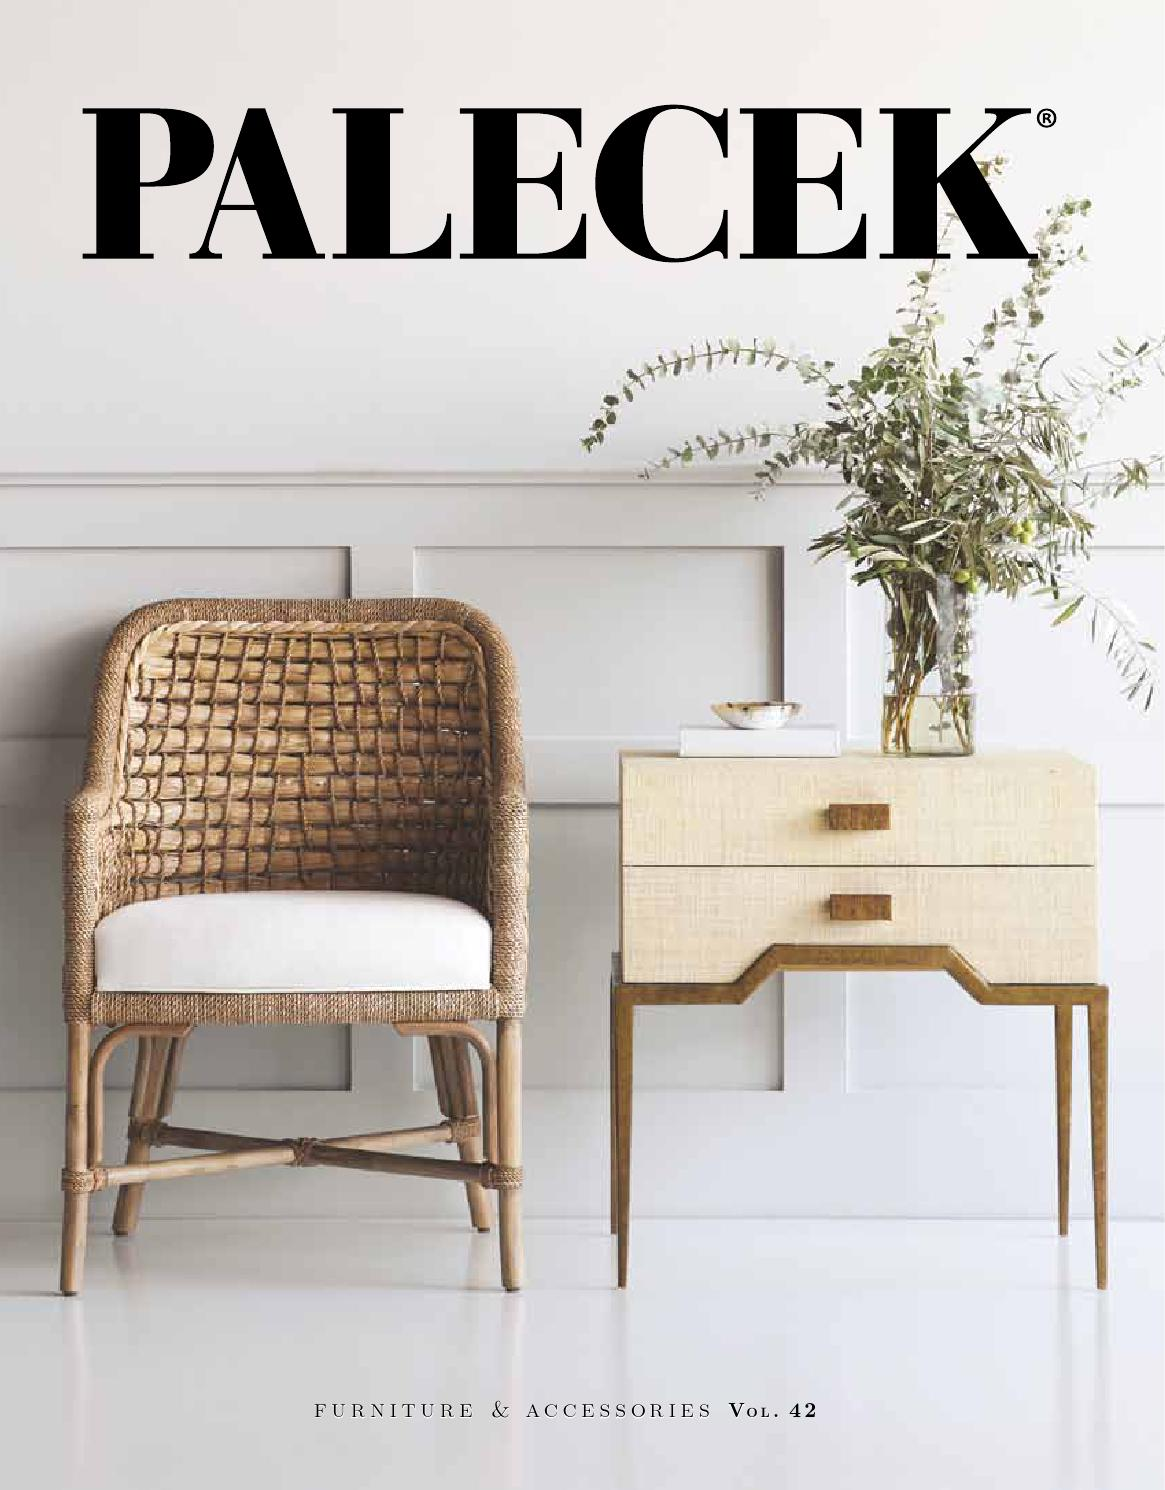 PALECEKu0027s 2016 Furniture U0026 Accessories Catalog Vol. 42 By Palecekdesign    Issuu